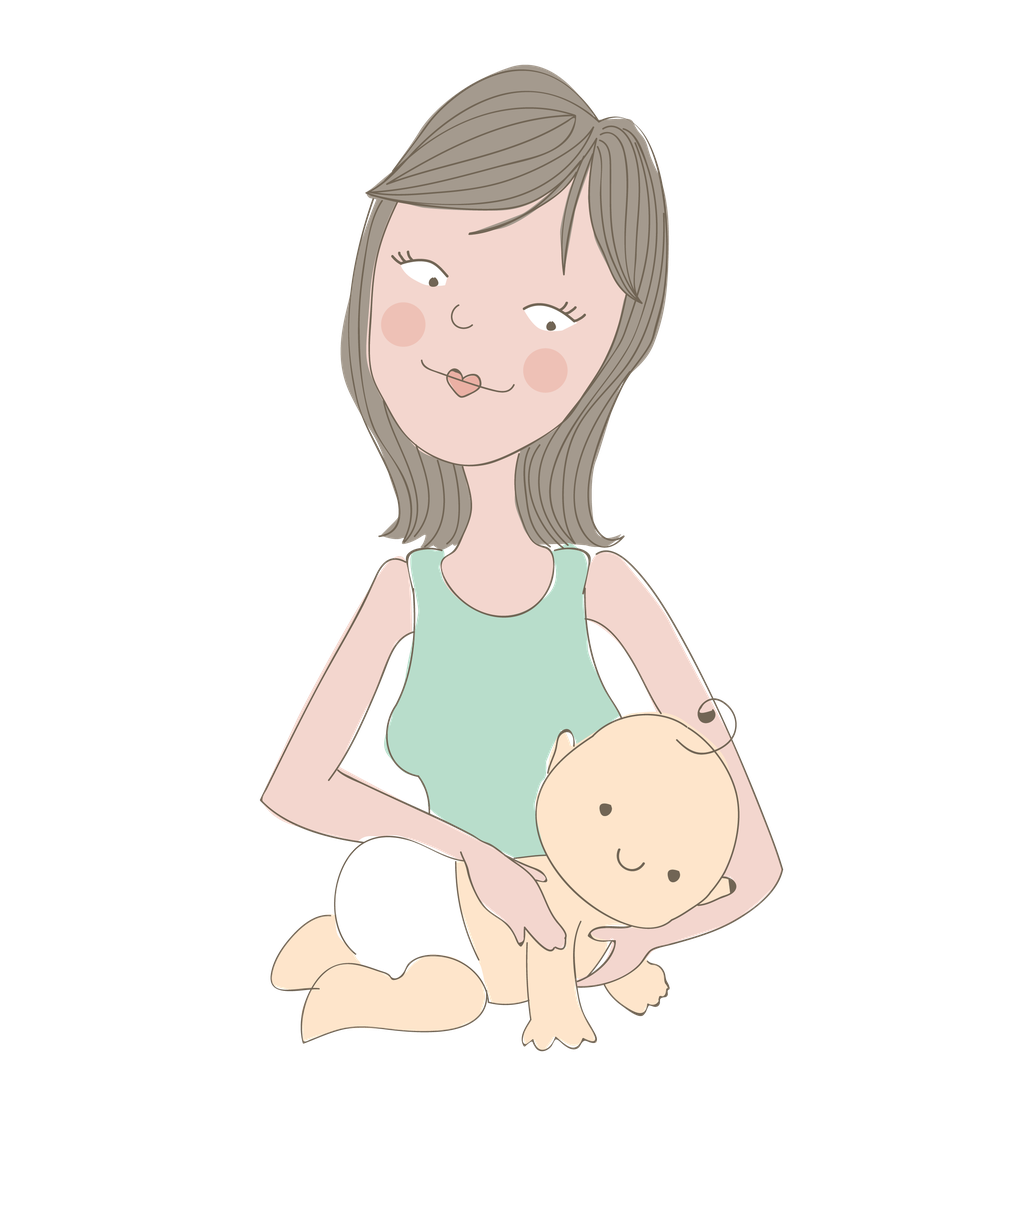 Bespoke illustration of mother massaging baby, for Minding Each Moment, by Design By Pie